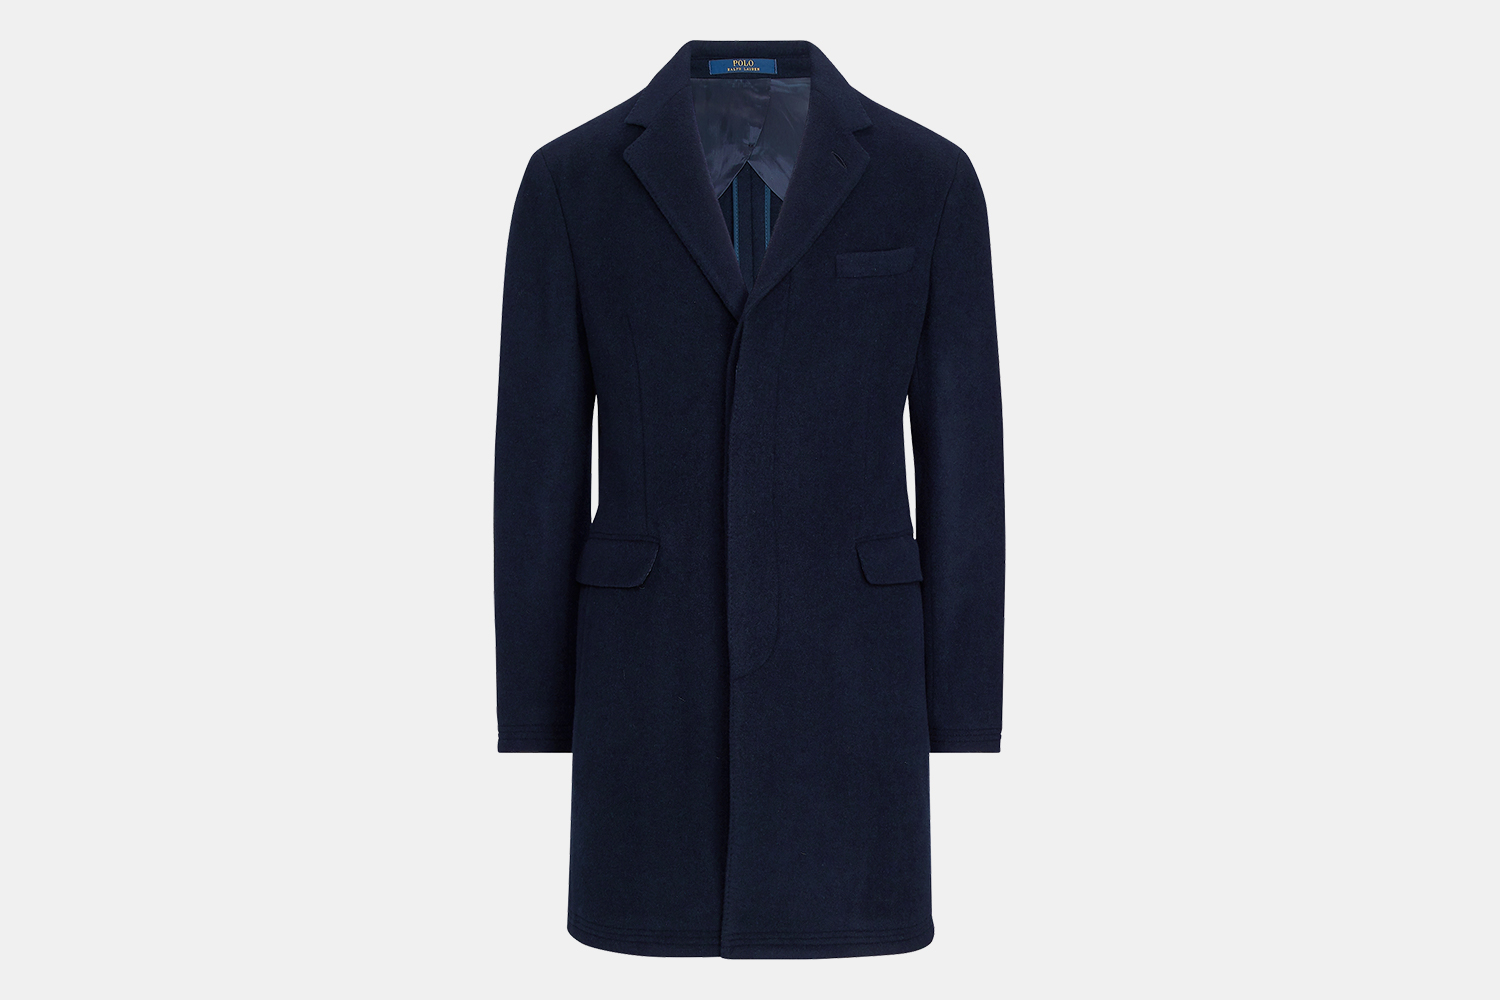 Ralph Lauren Men's Polo Soft Wool-Blend Topcoat